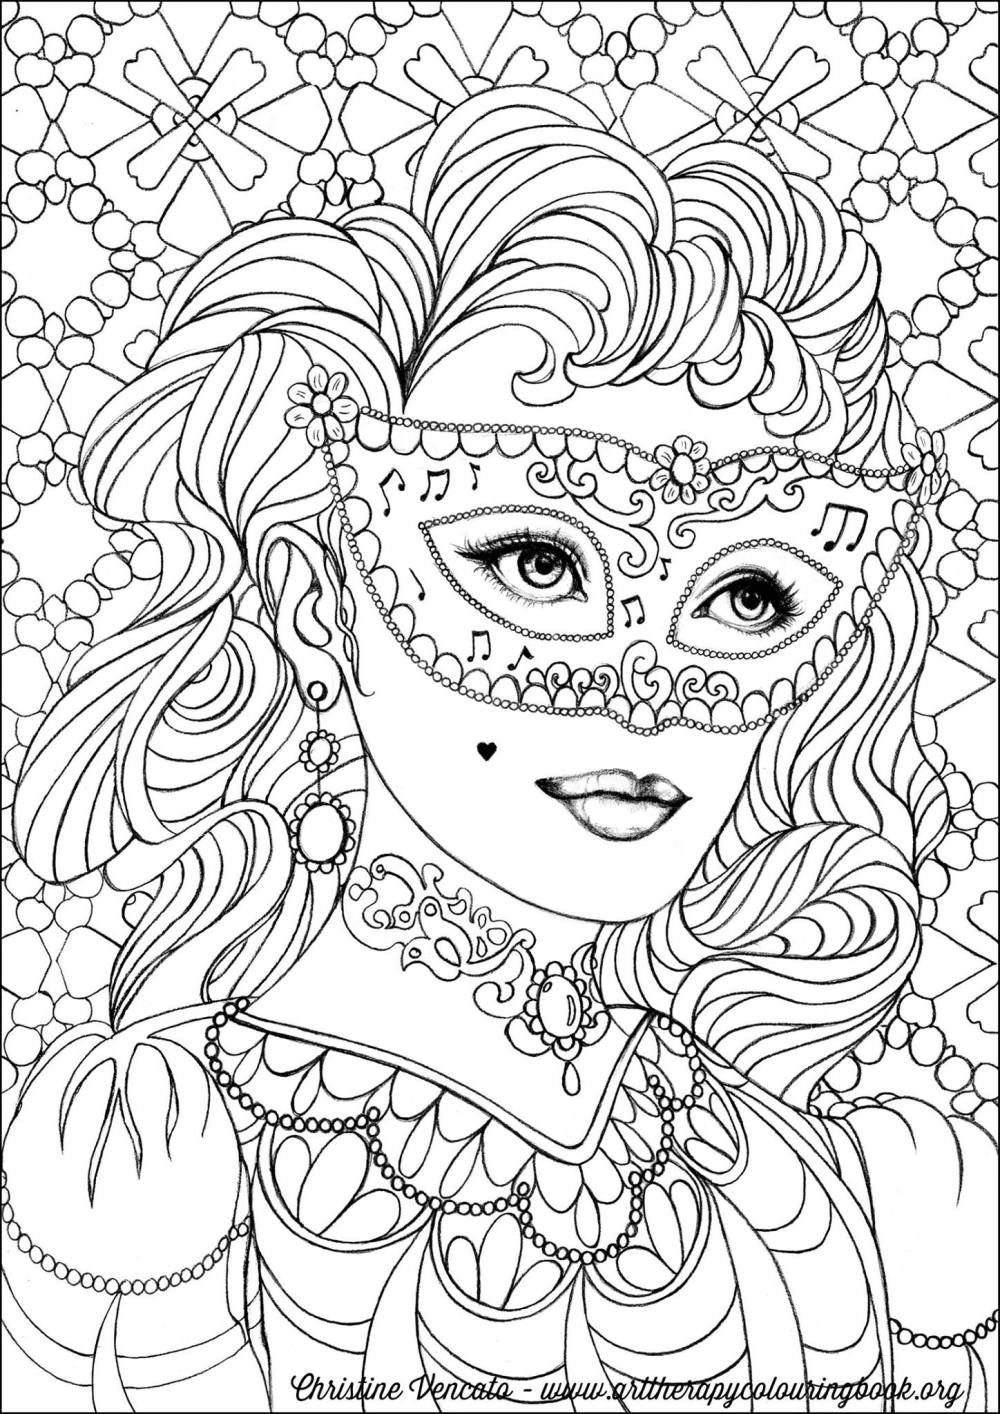 Free Coloring Page From Adult Coloring Worldwide. Art by ... | coloring pages for adults online printable